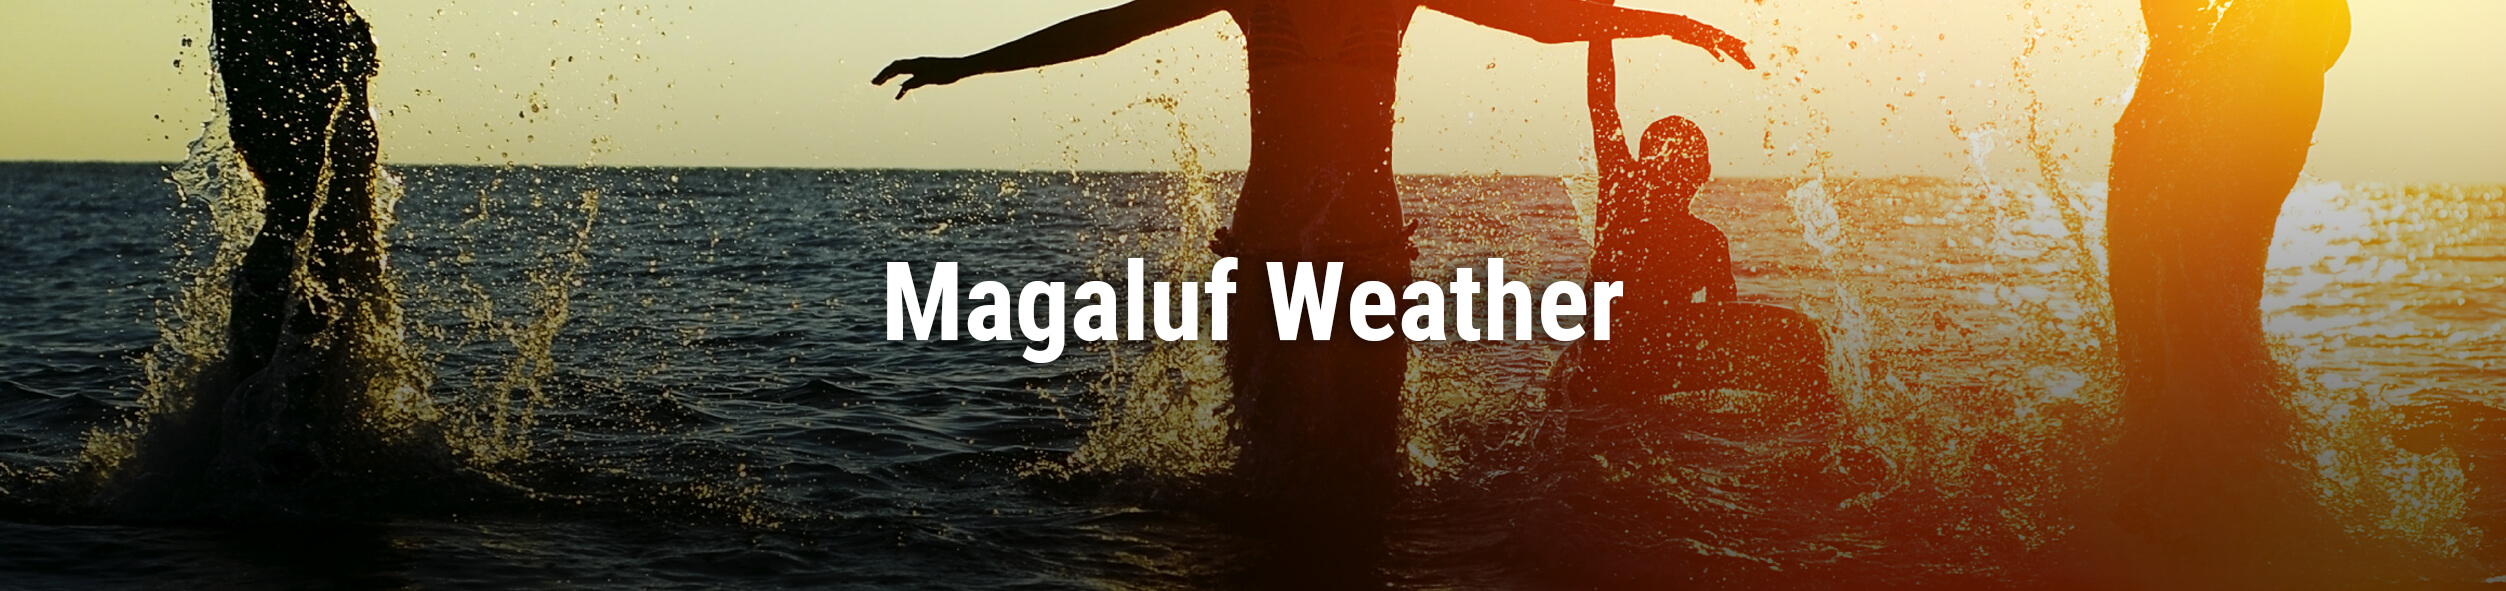 magaluf weather